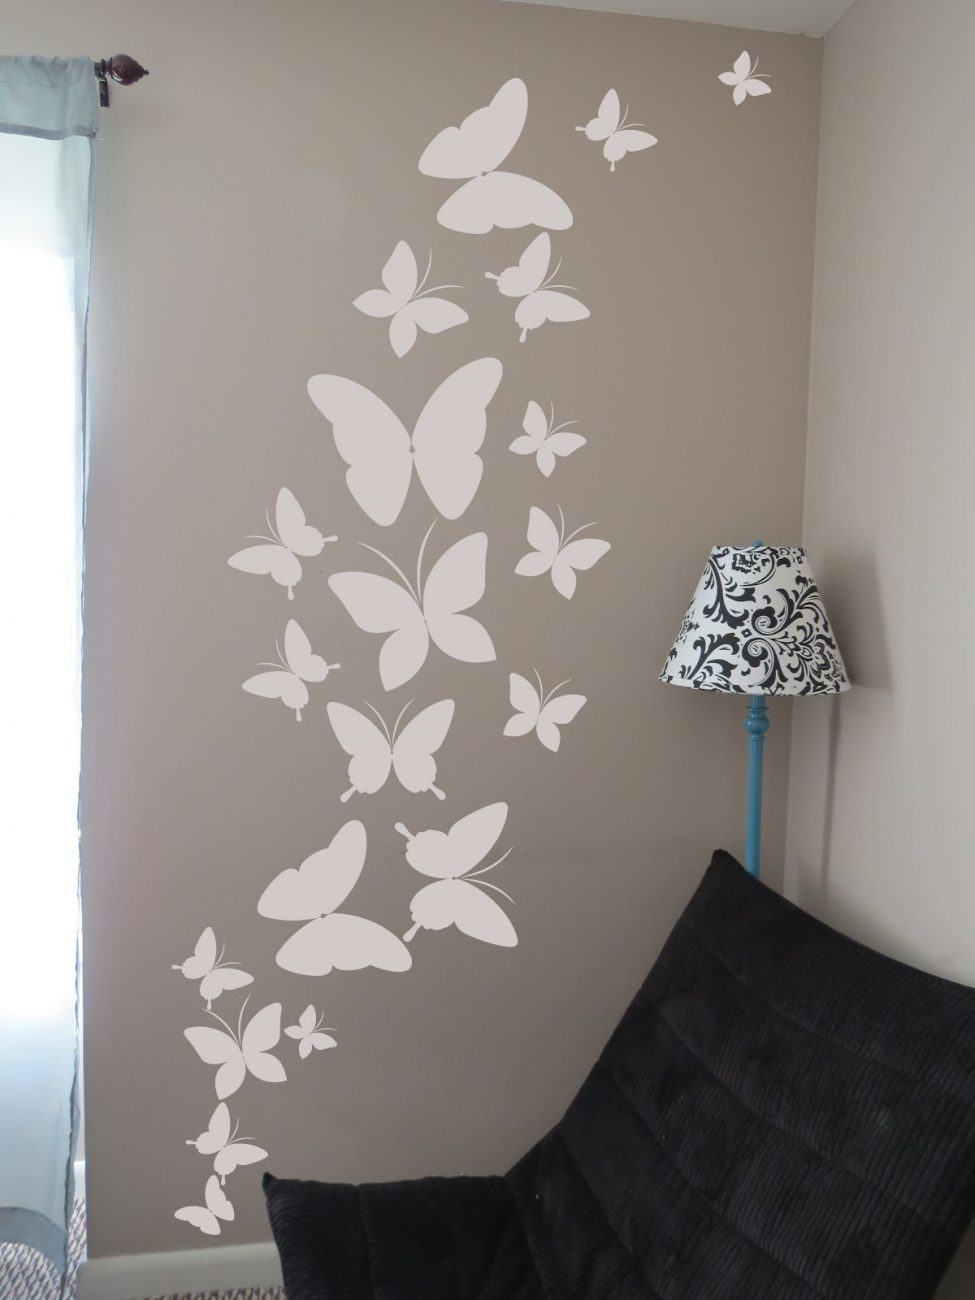 Butterfly cluster wall decal sticker